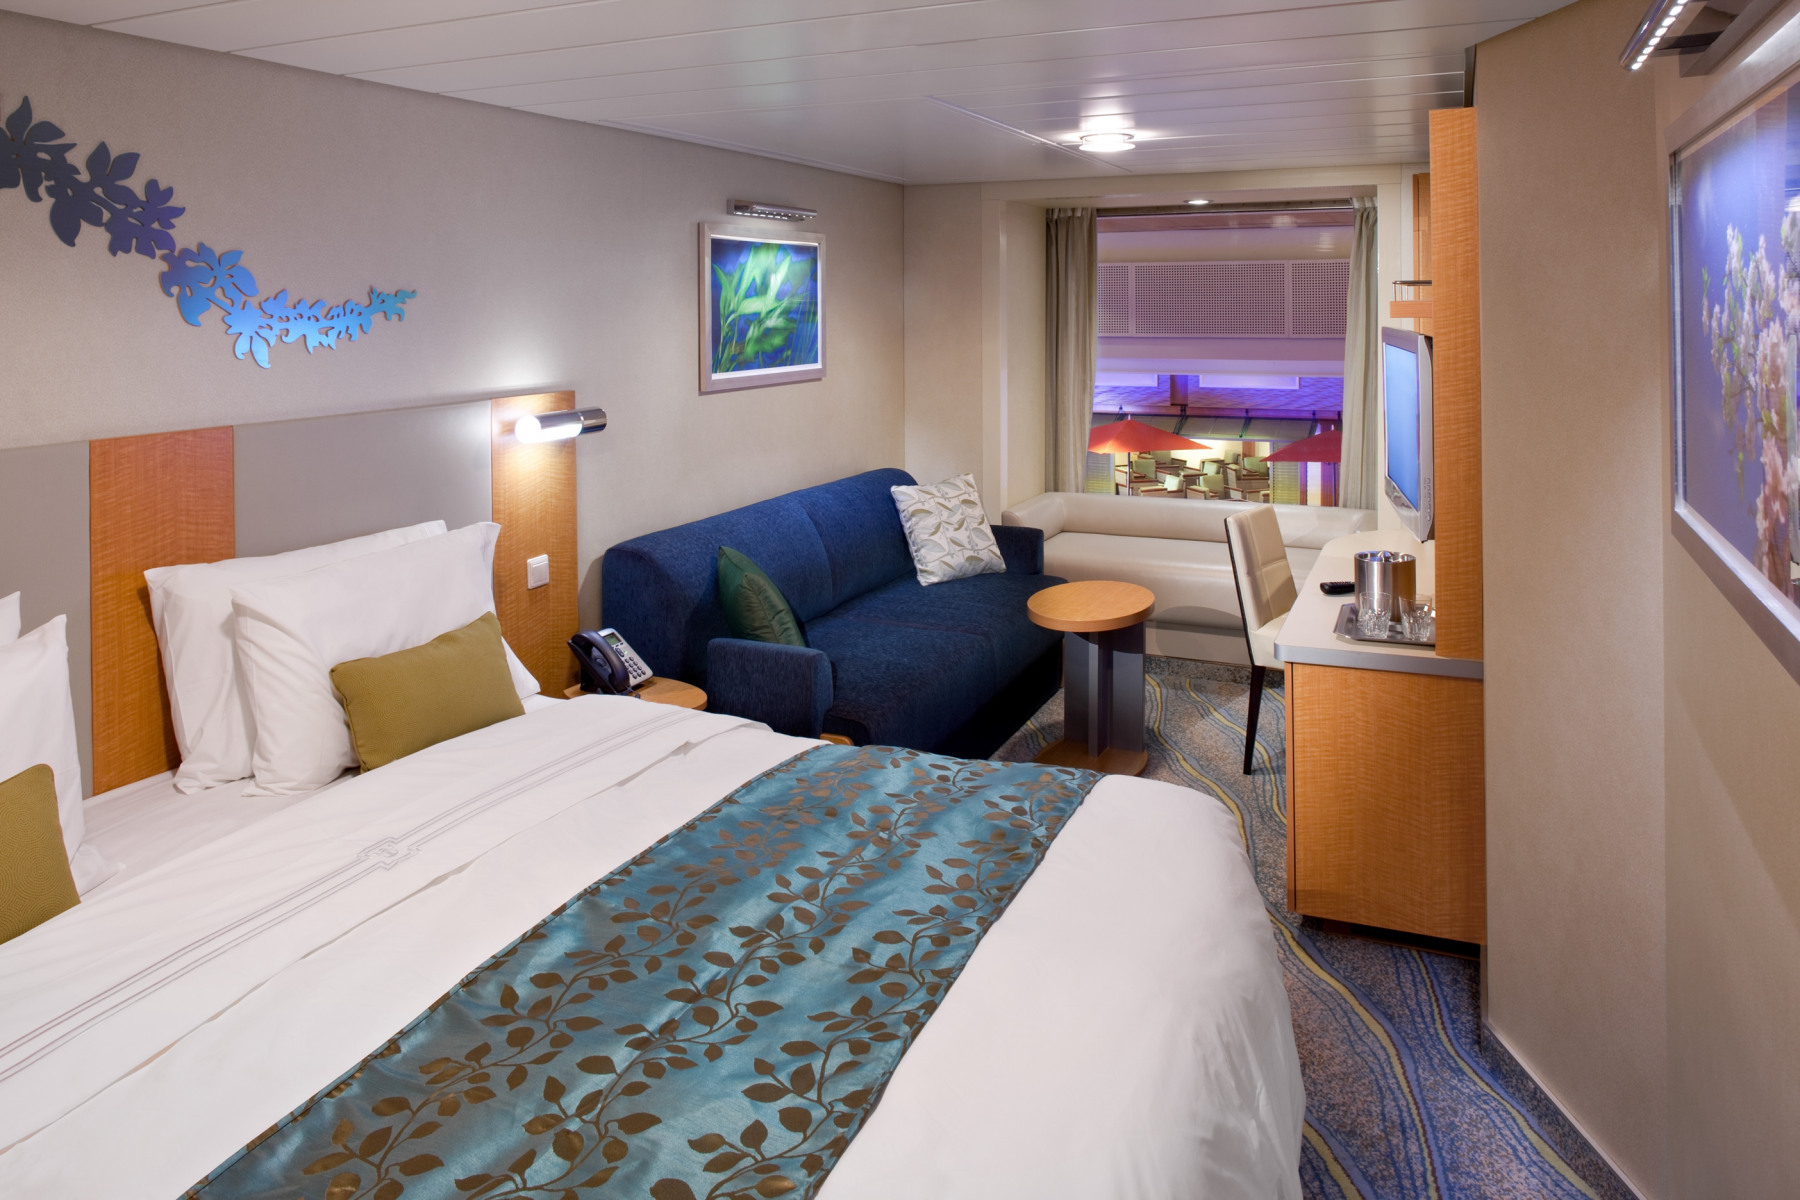 Royal Caribbean International Oasis of the seas accommodation promenade view stateroom.jpg